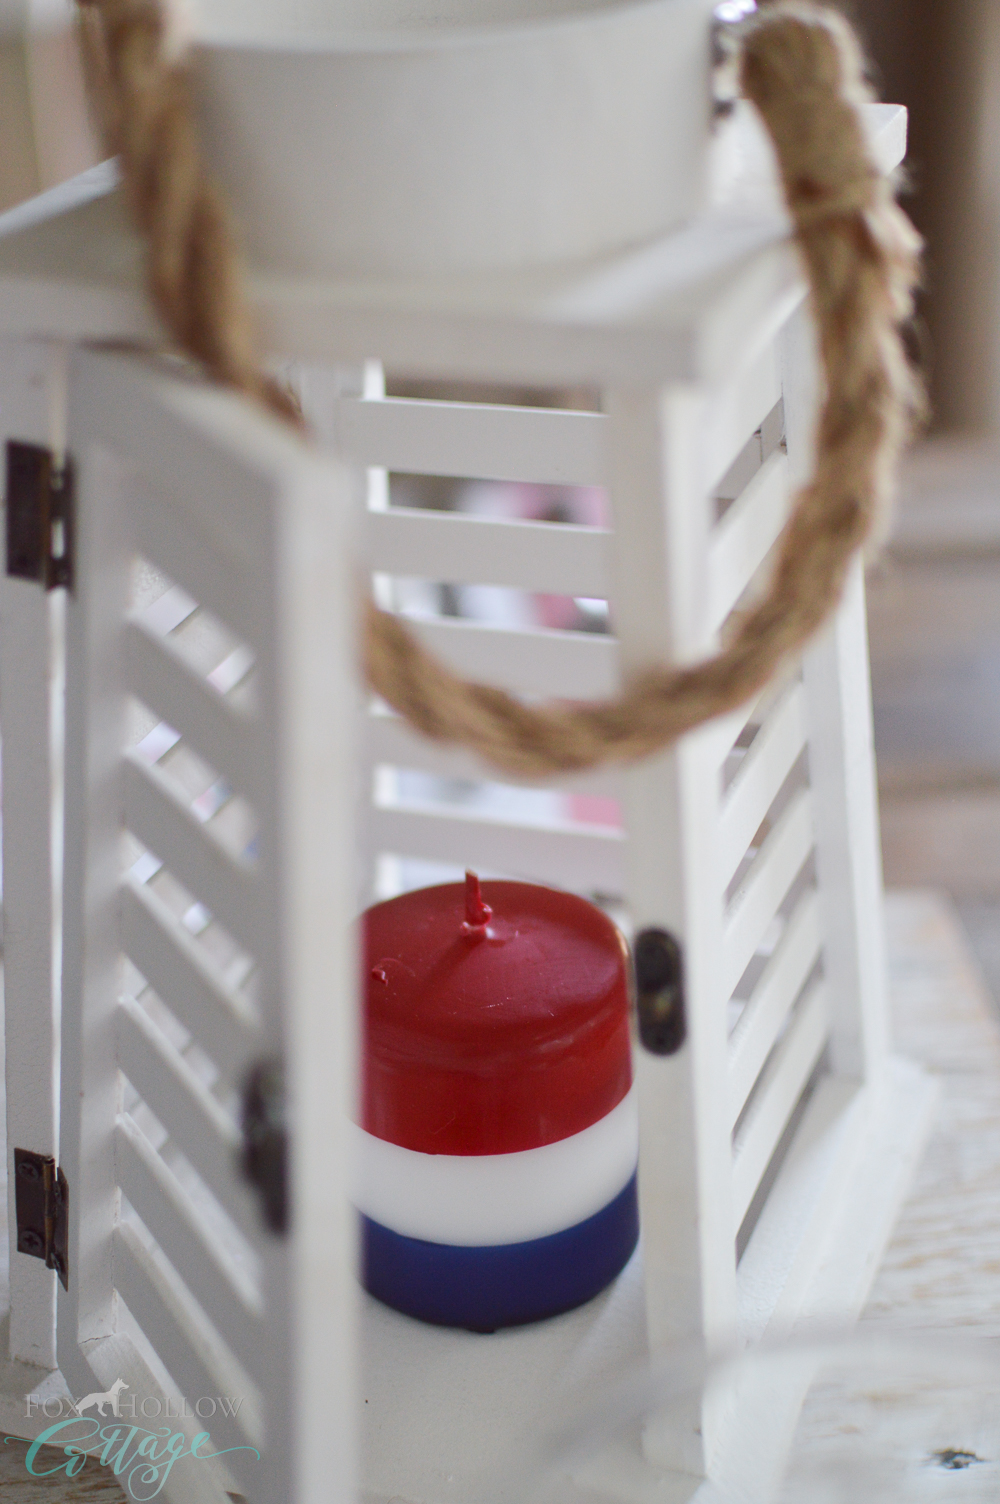 Simple 4th of July Table Decorating Ideas - Red, White and Blue Candle + Wood Lantern